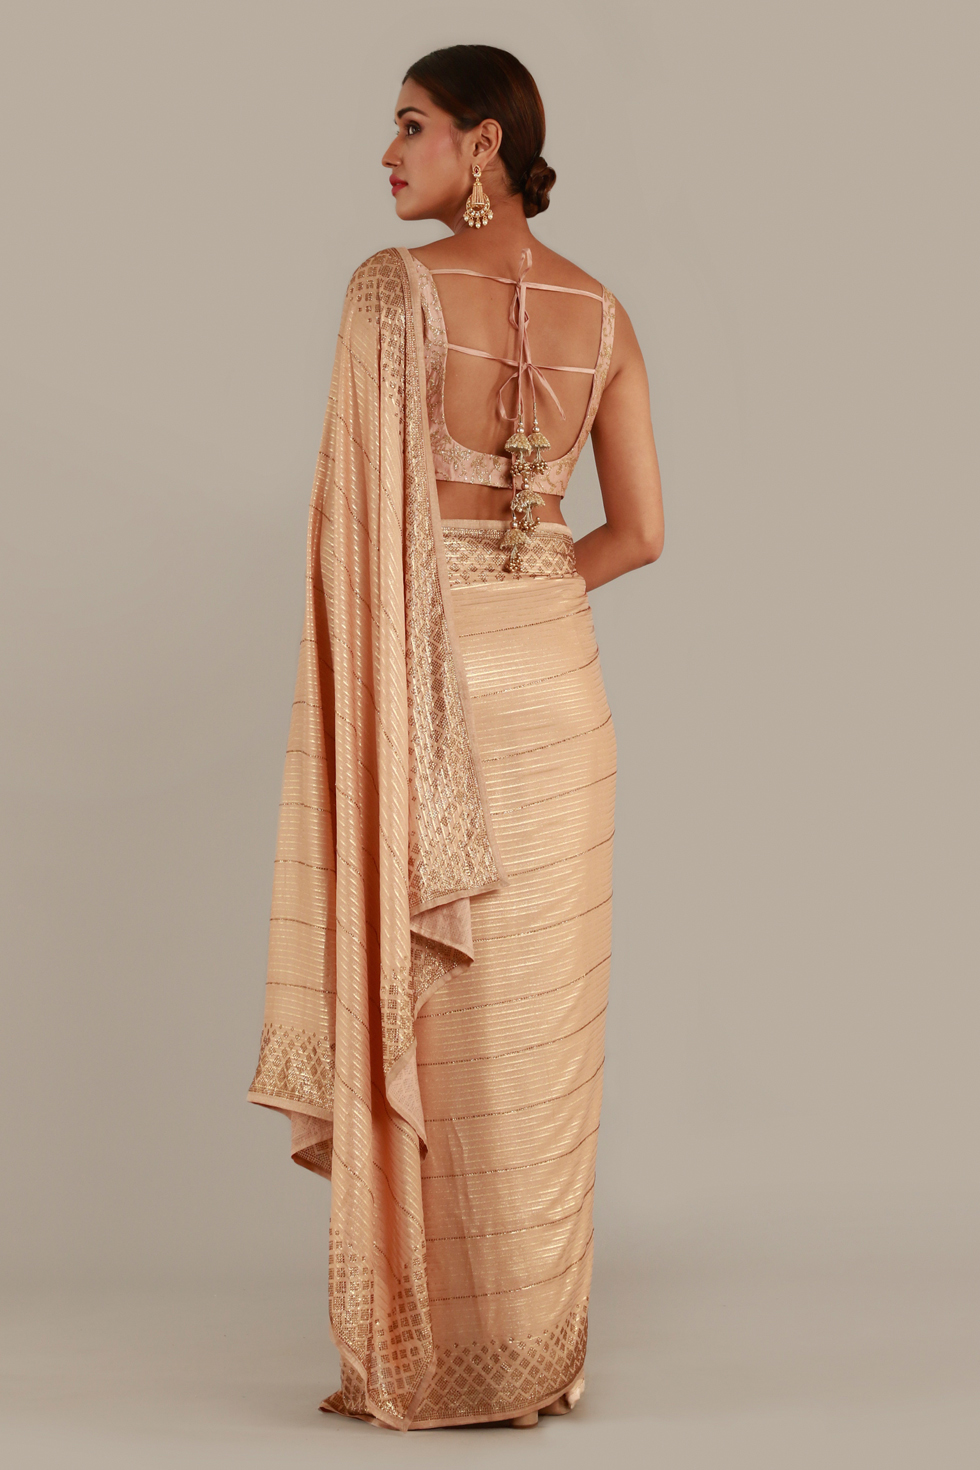 Pastel peach pink classic saree with gold details and matching blouse with gold neckline embroidery